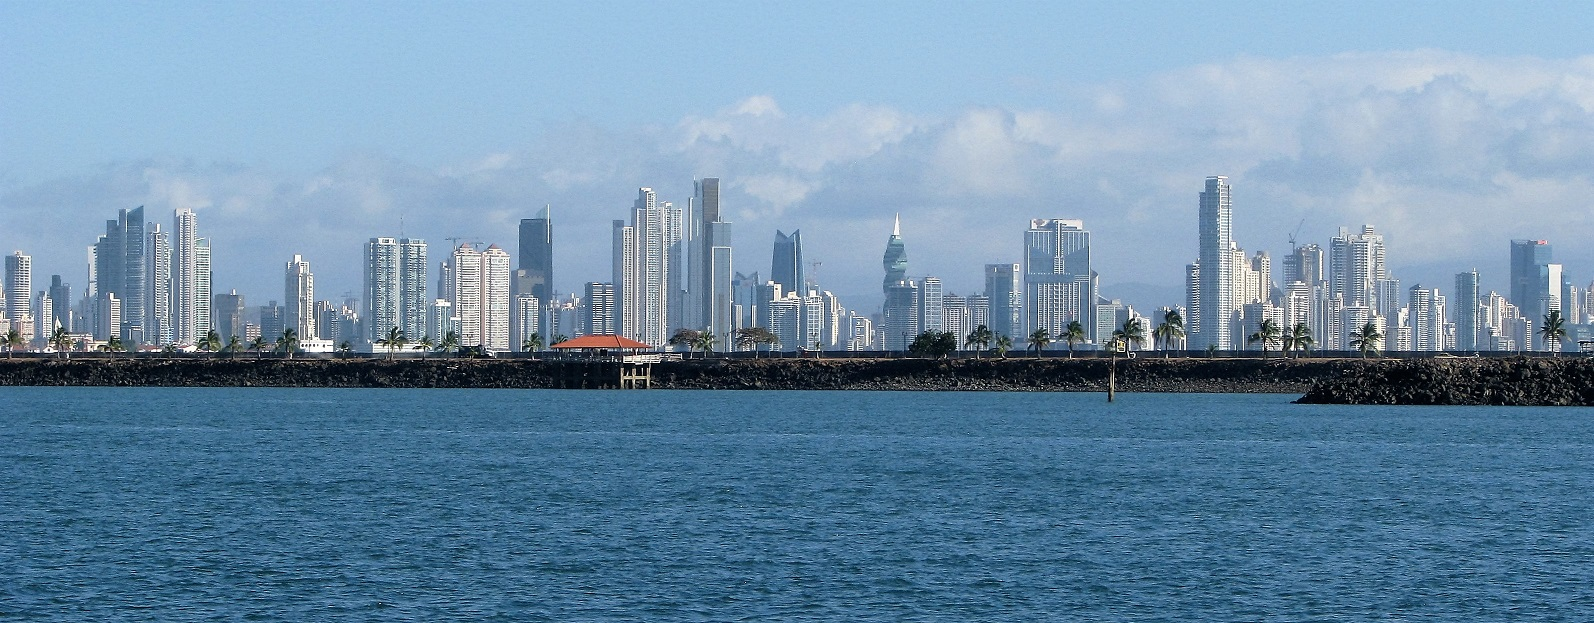 Skyline, Panama City